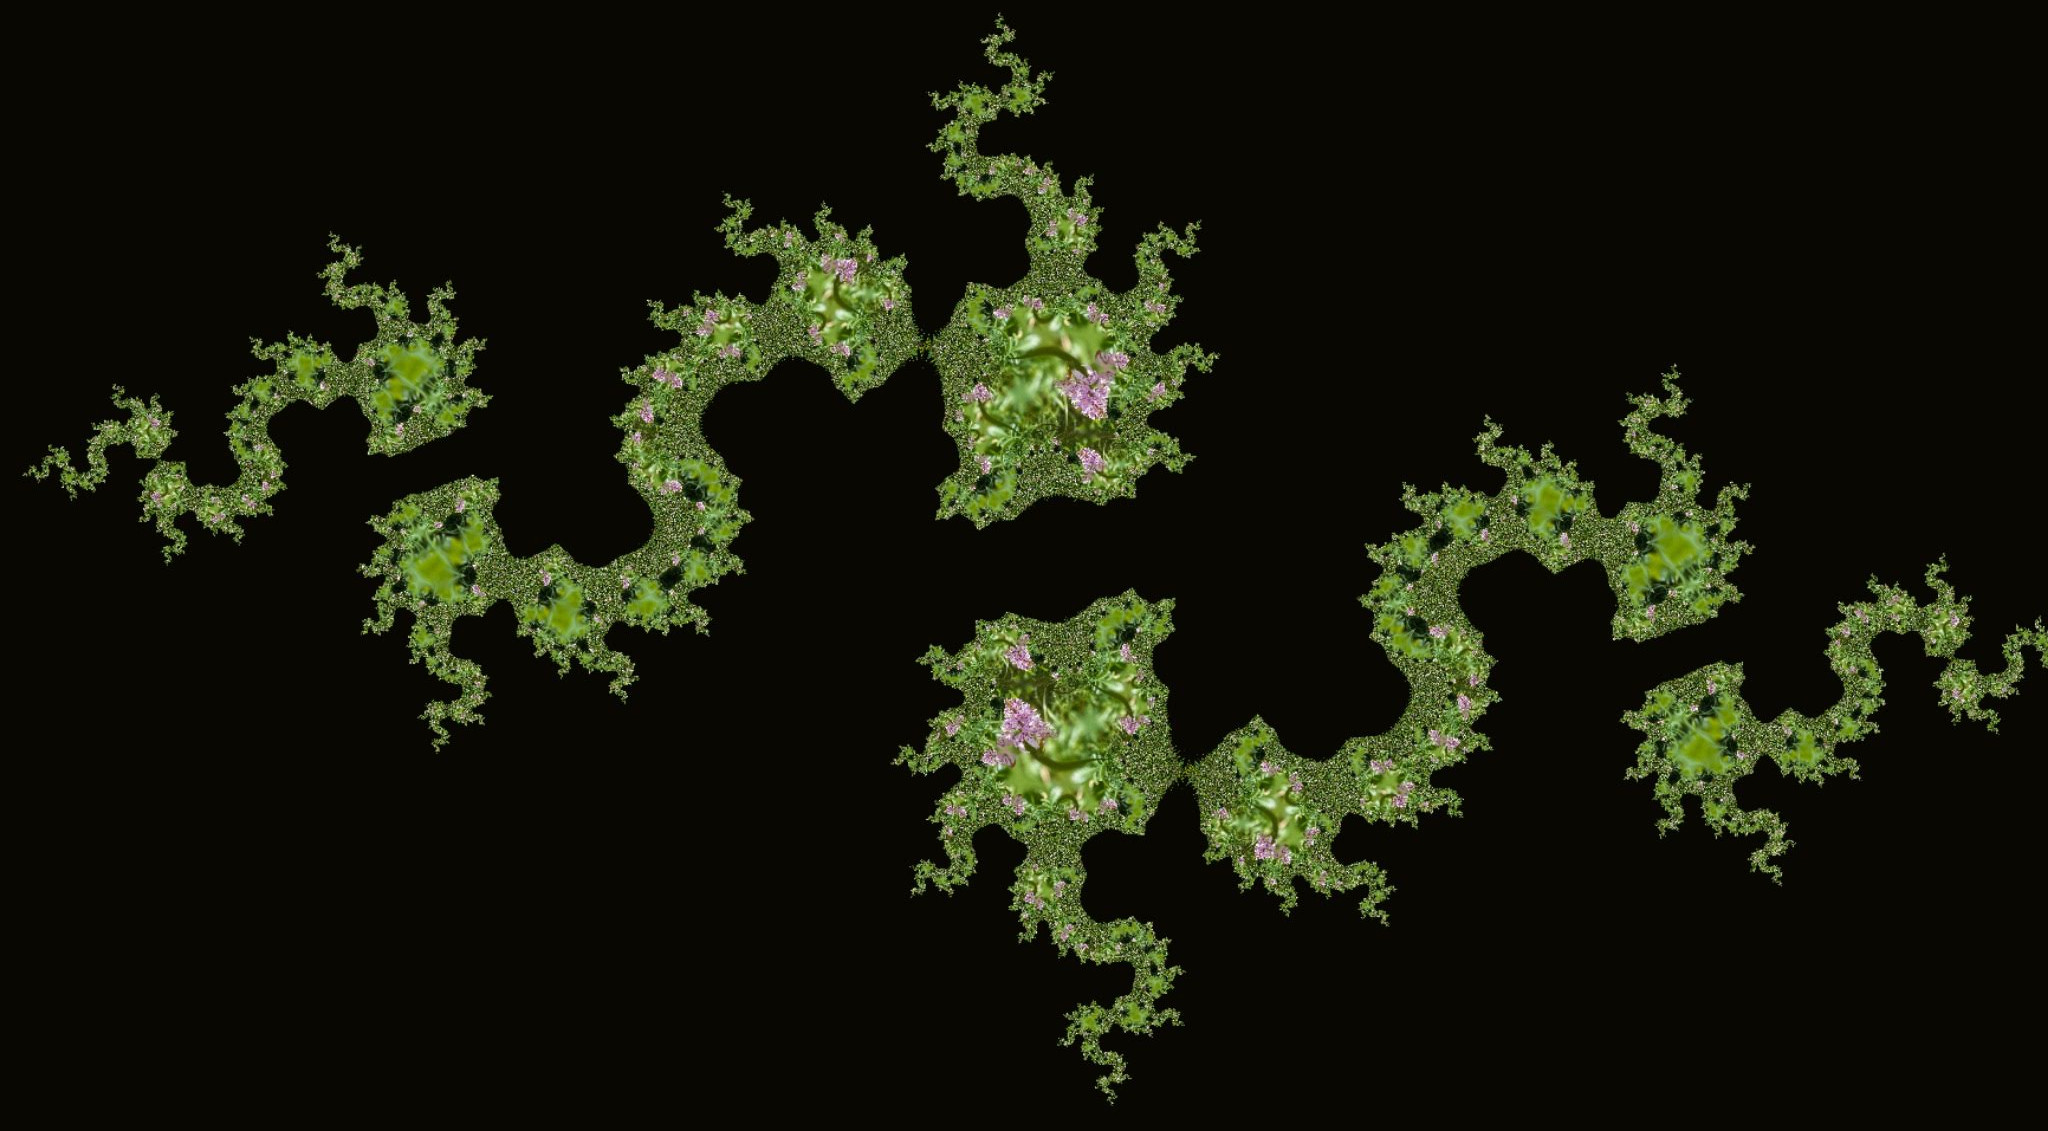 Wild Orchid photo manipulated to look like dotted about Islands